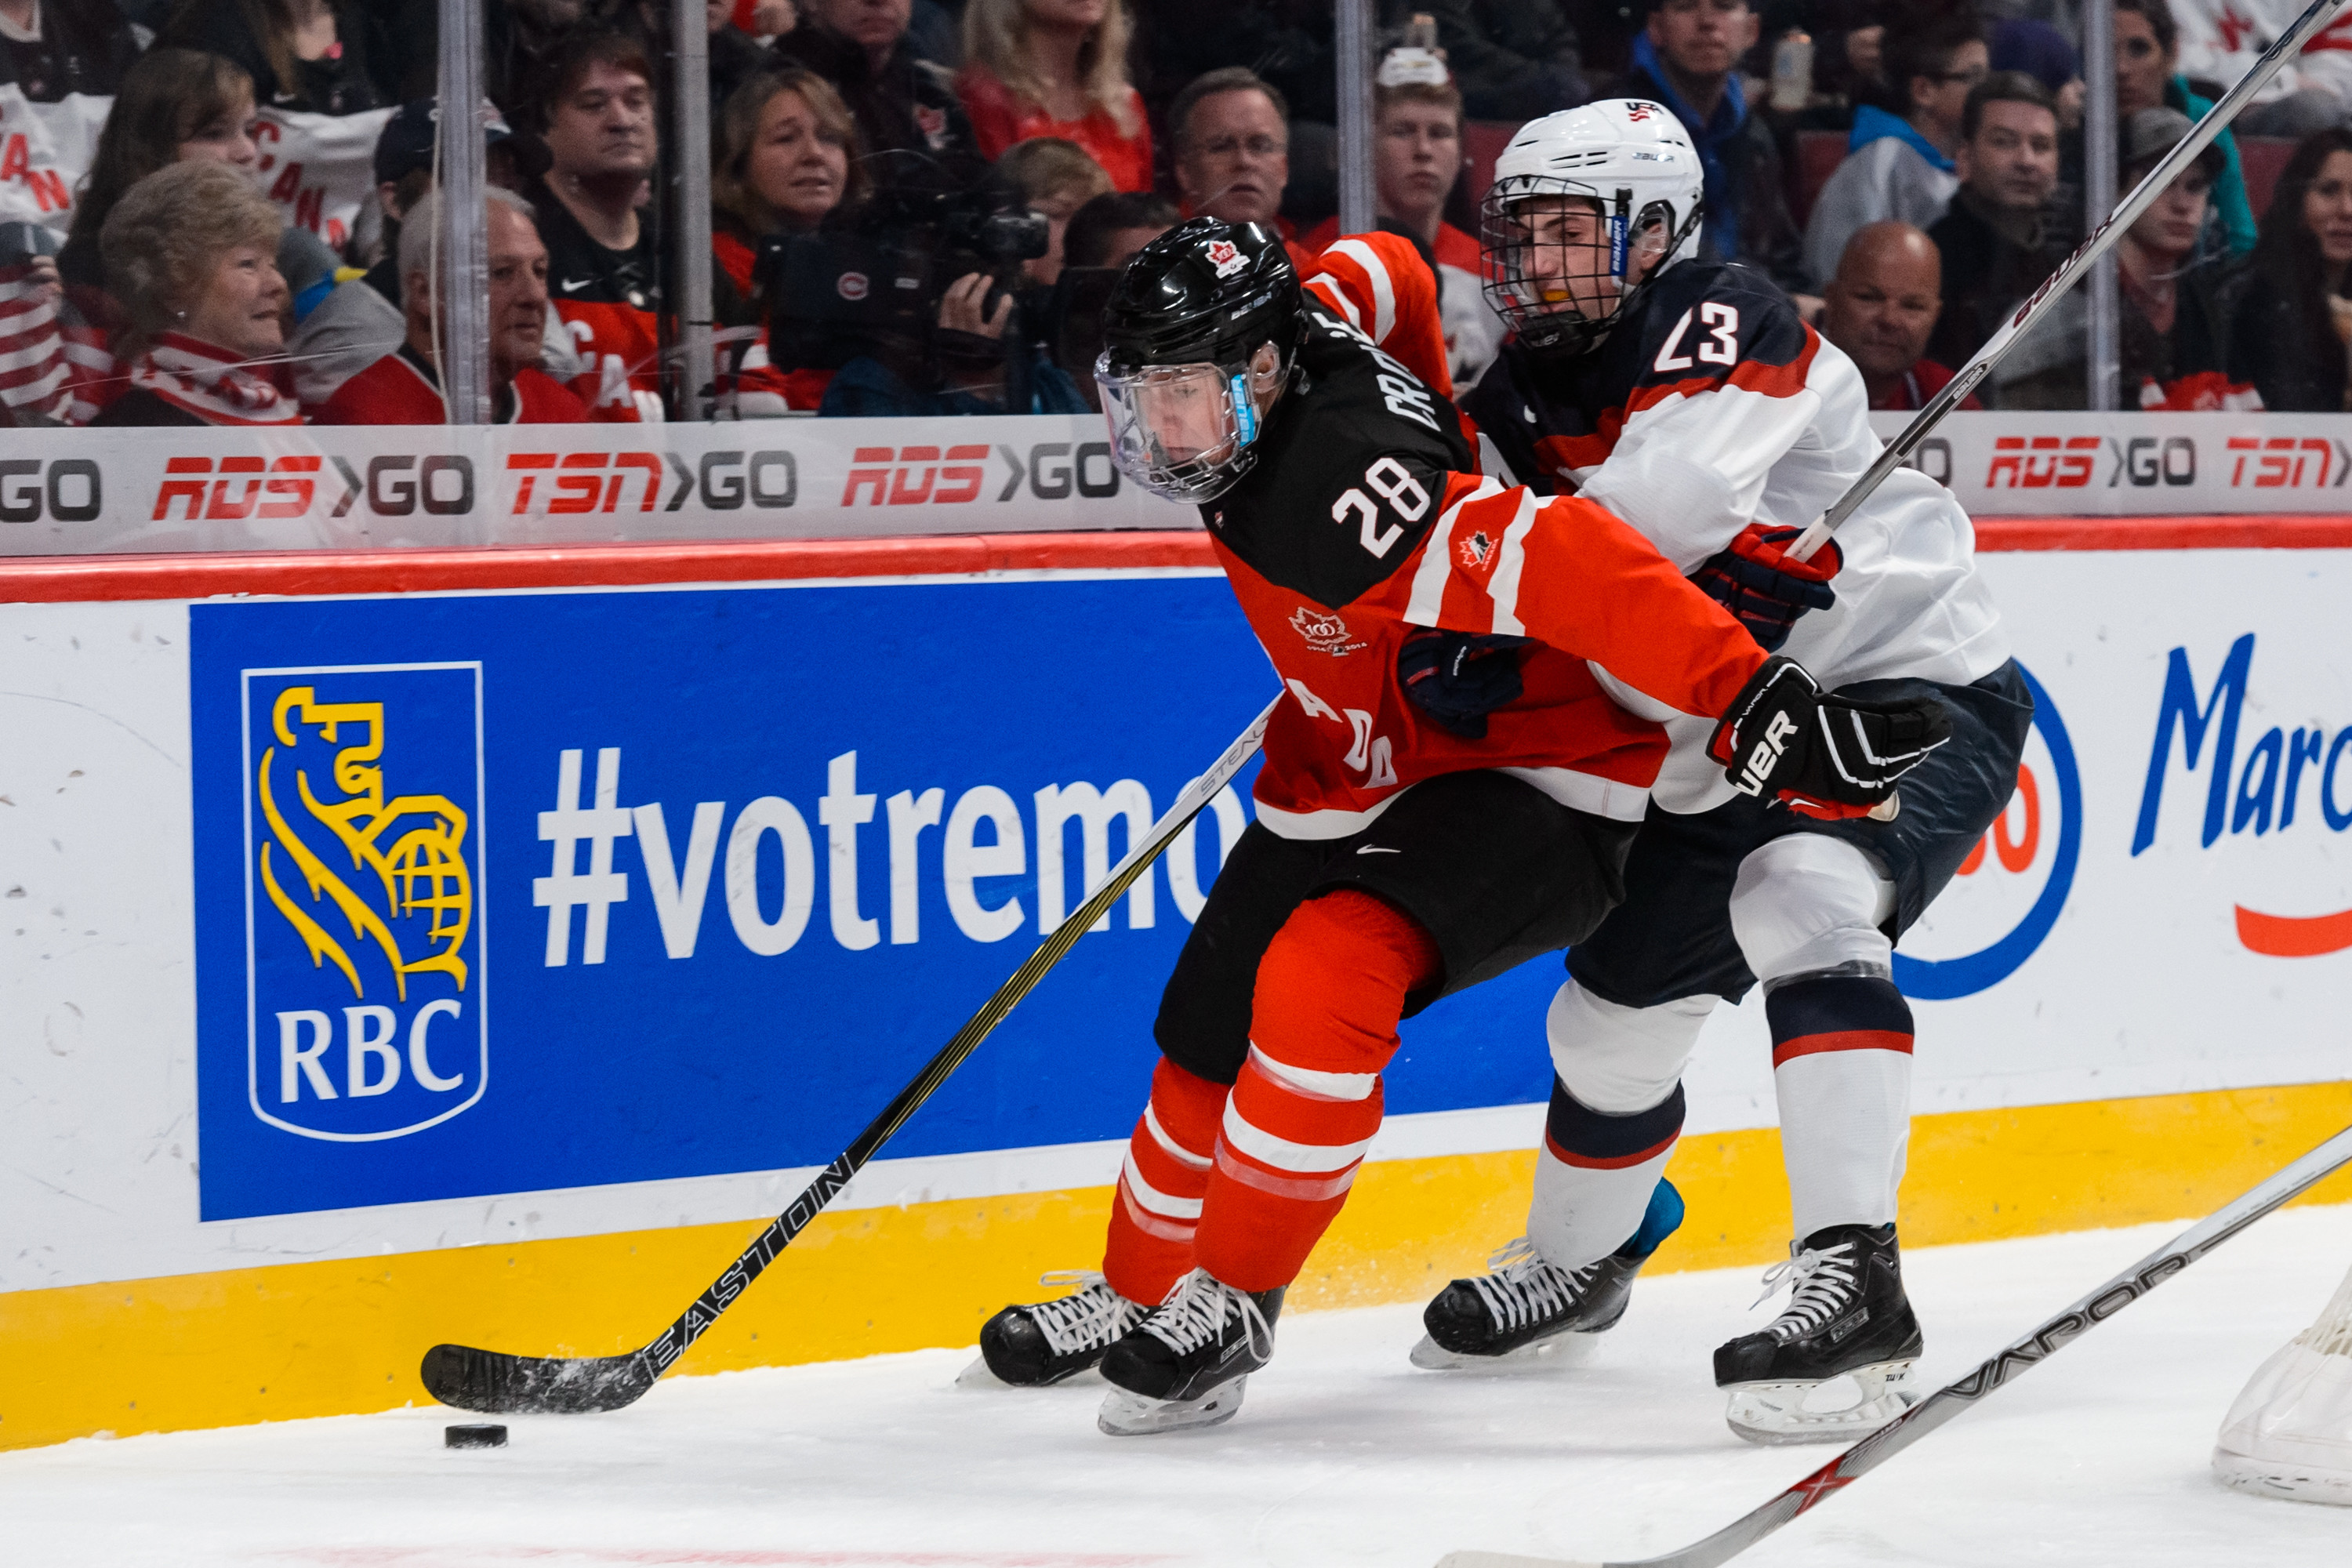 WJC: 2017 Tournament - Who Is Going To Canada